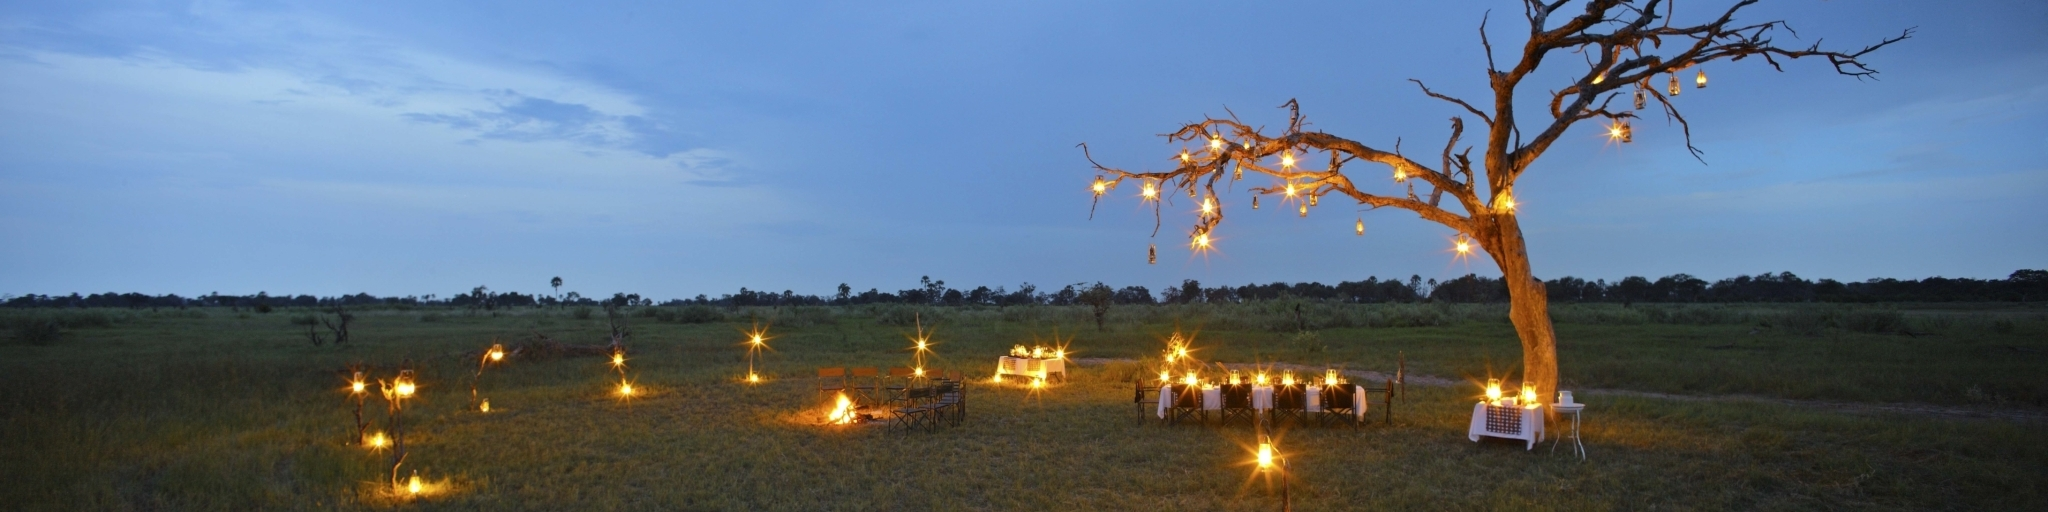 Decor lights at Camp Okavango, Botswana